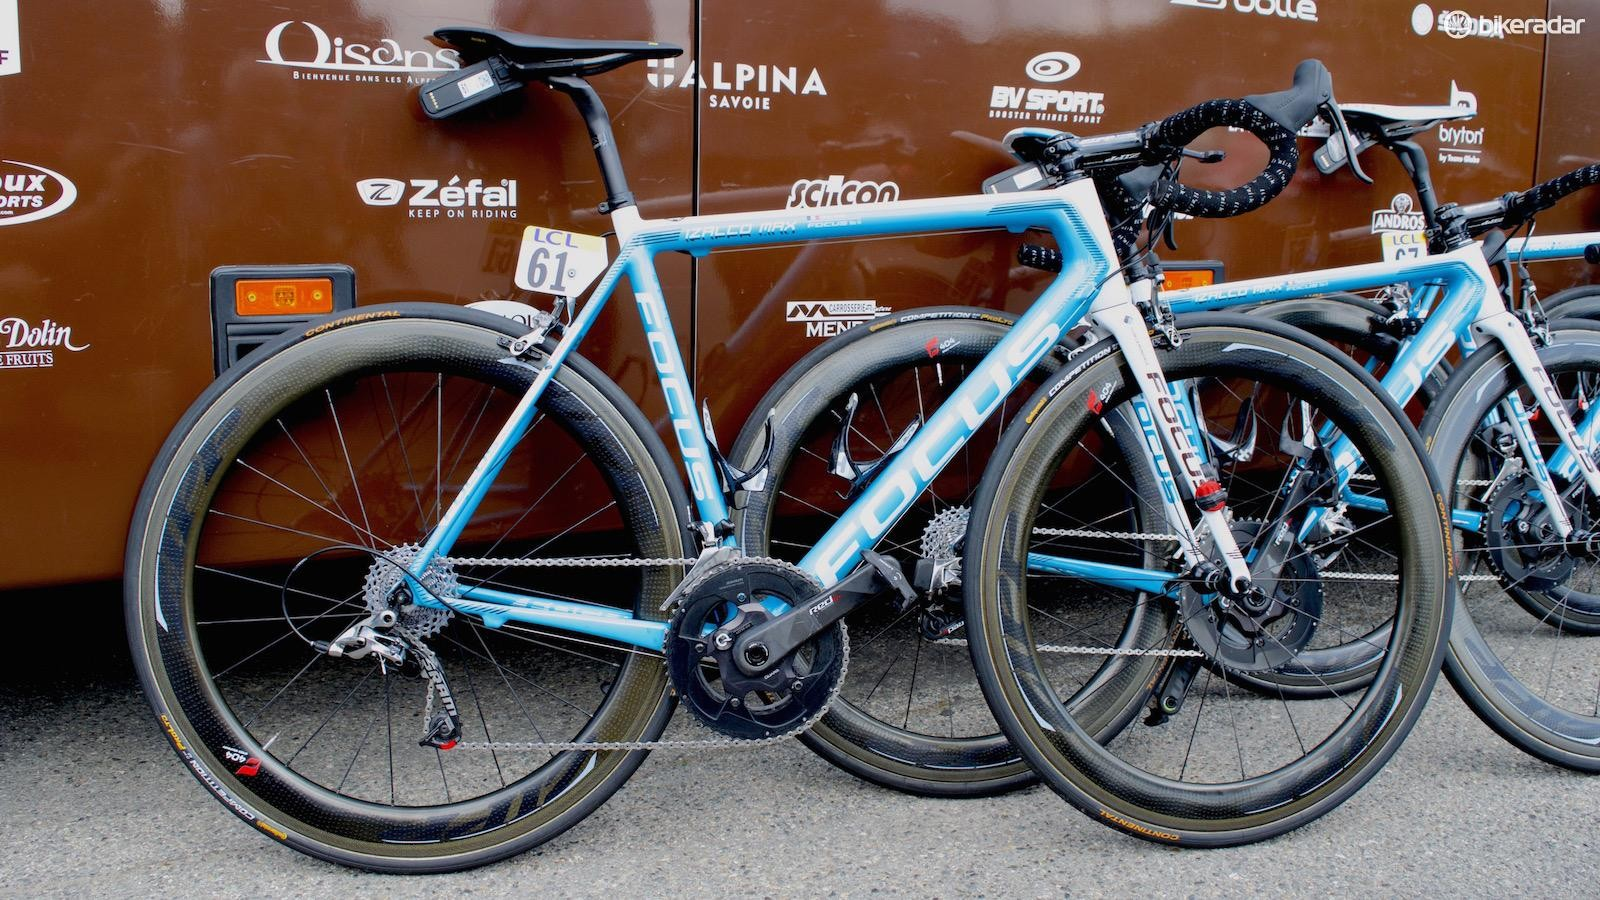 A mechanical version of SRAM Red was also seen equipped on another of the Frenchman's bikes